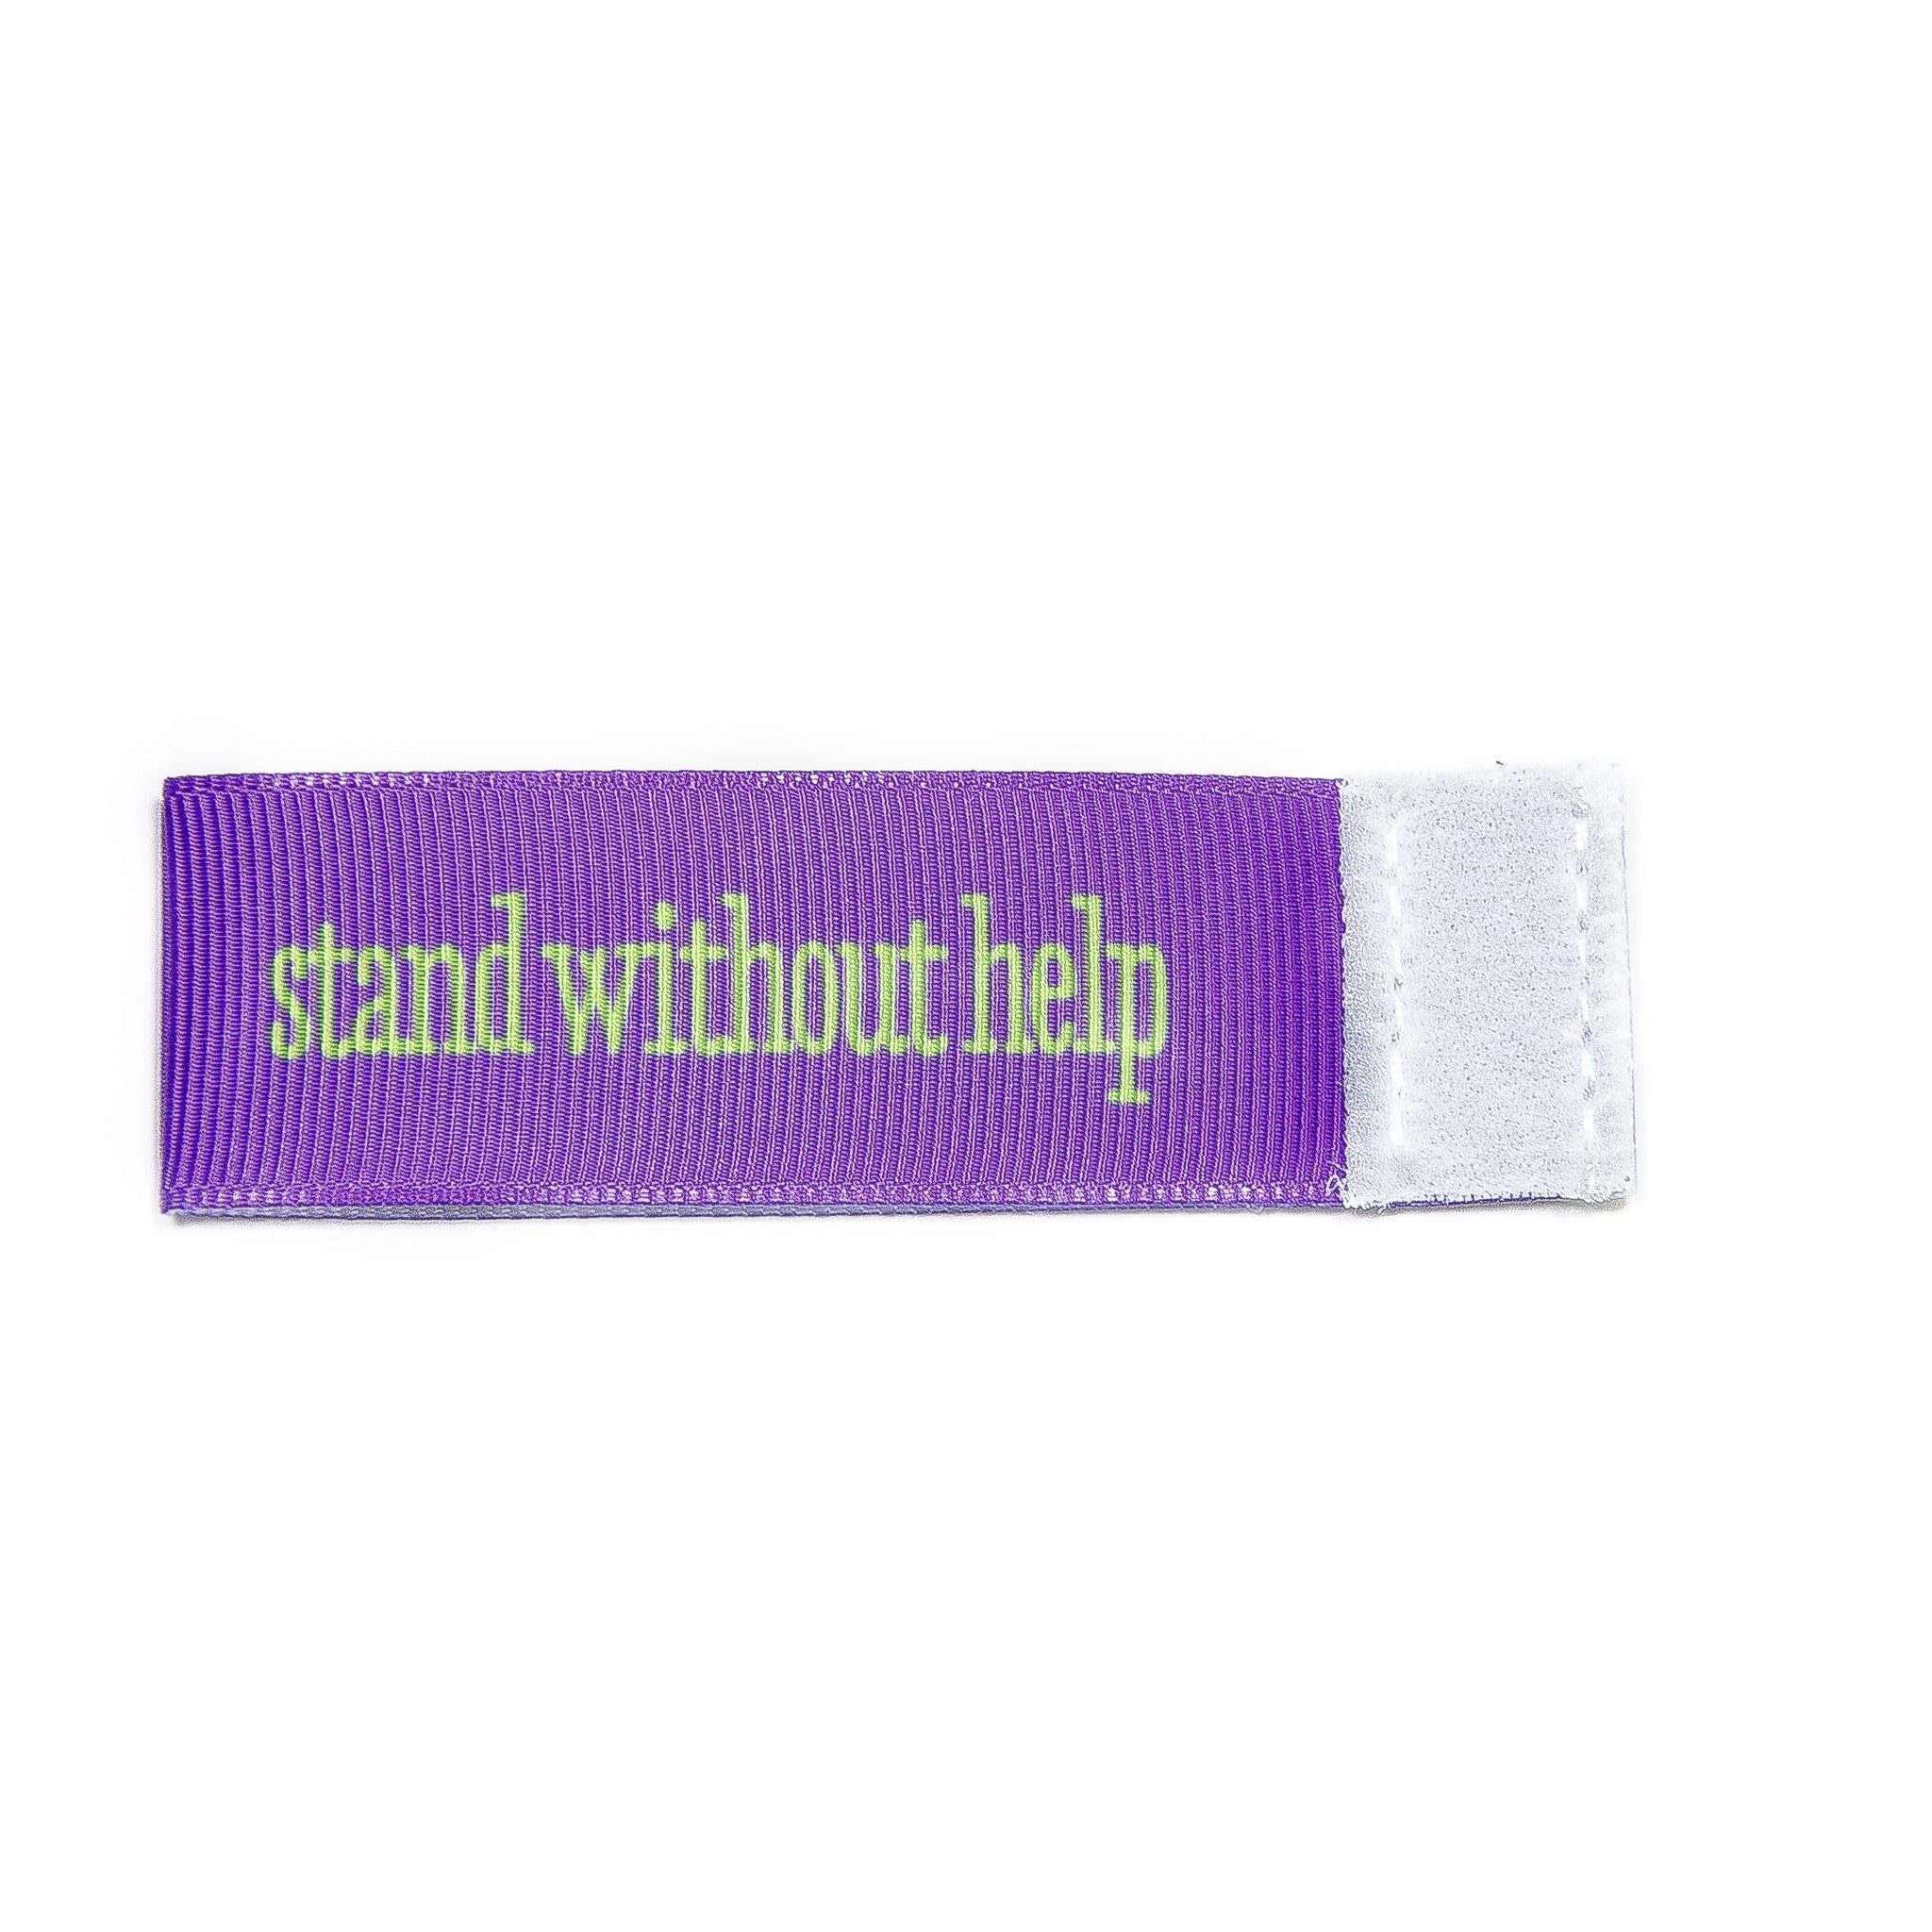 stand without help Wee Charm ribbon purple